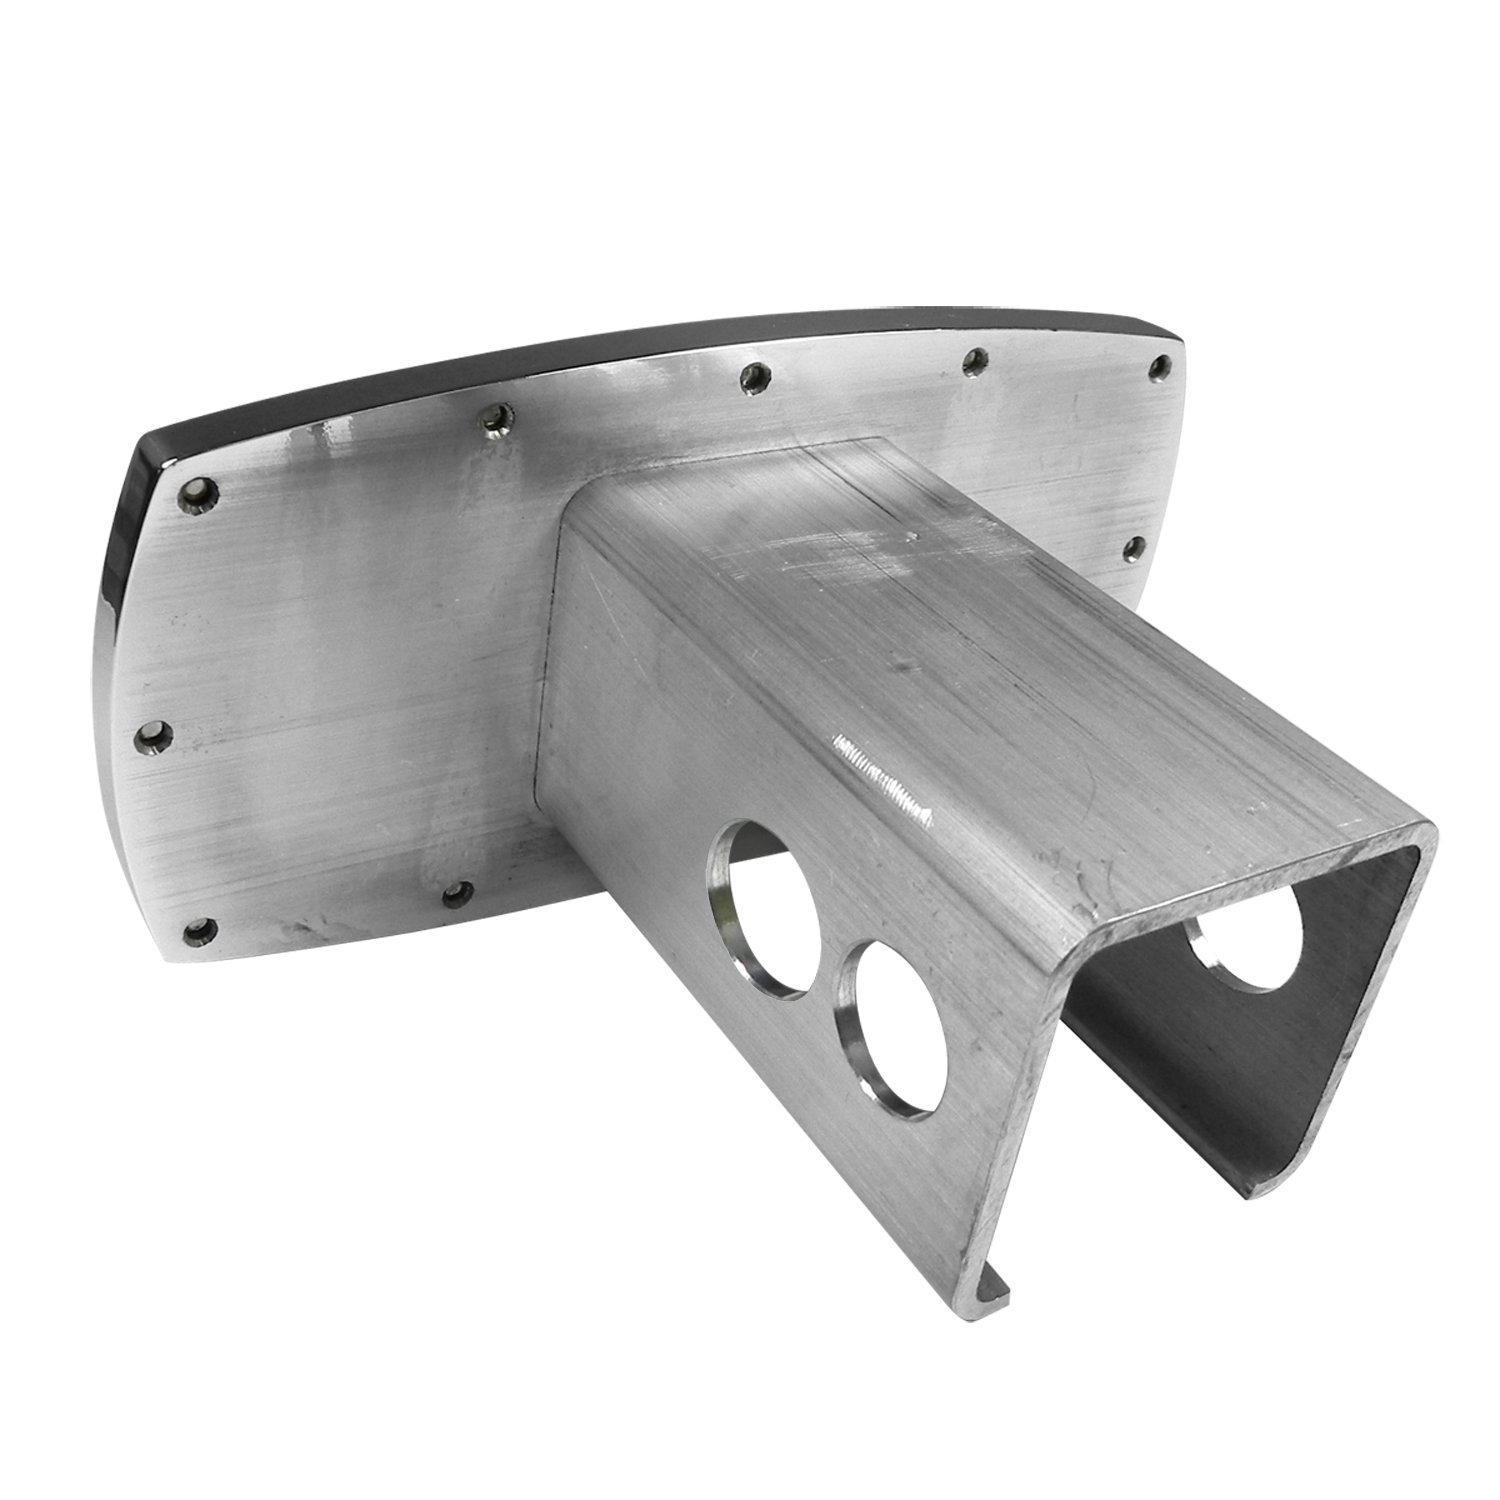 Dodge RAM Engraved Billet Aluminum Tow Hitch Cover by Dodge CarBeyondStore